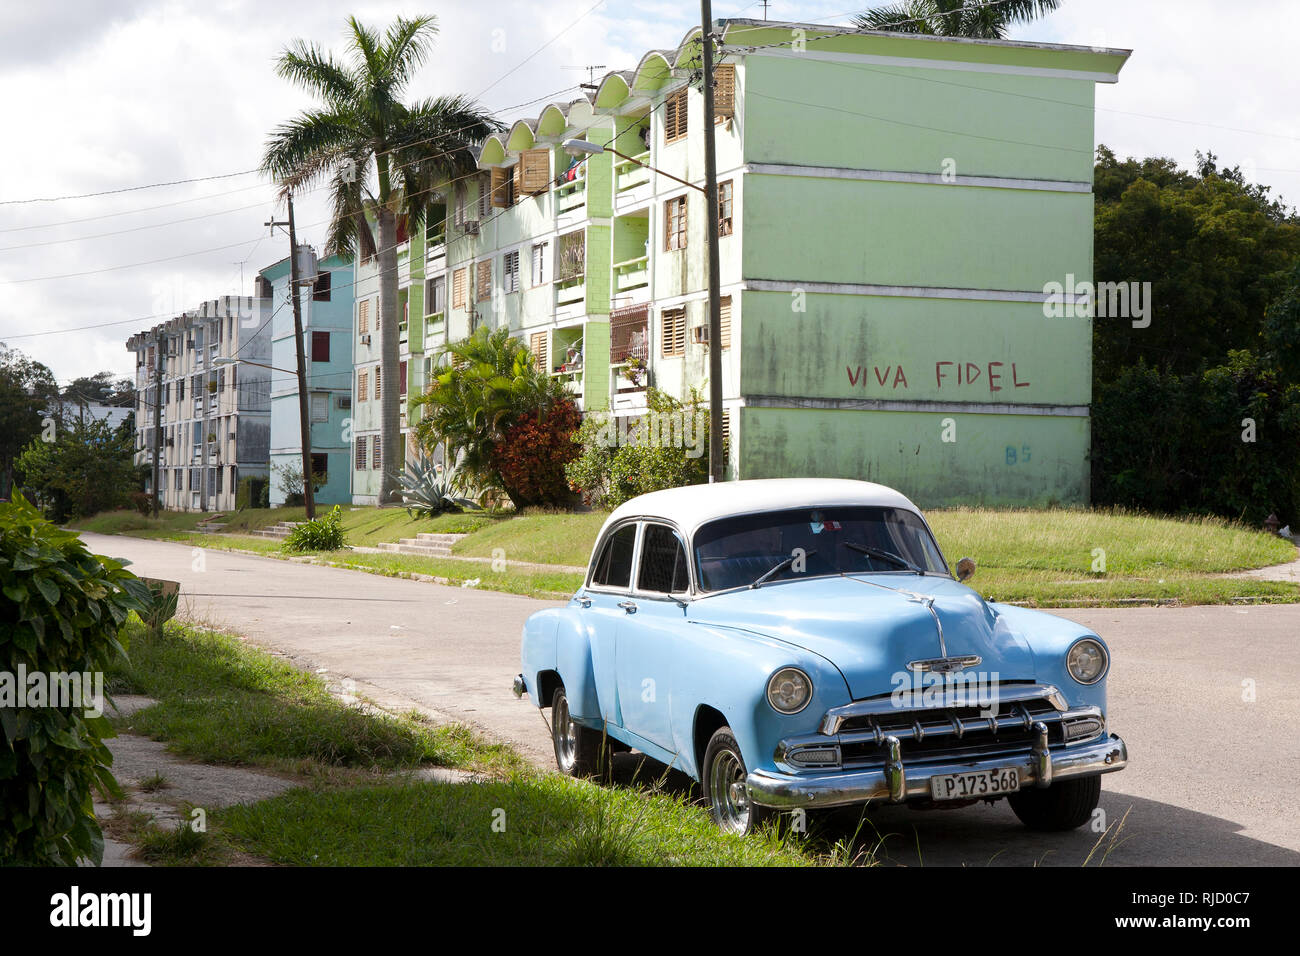 1950's Chevy parked in street on the out skirts of Havana, Cuba - Stock Image